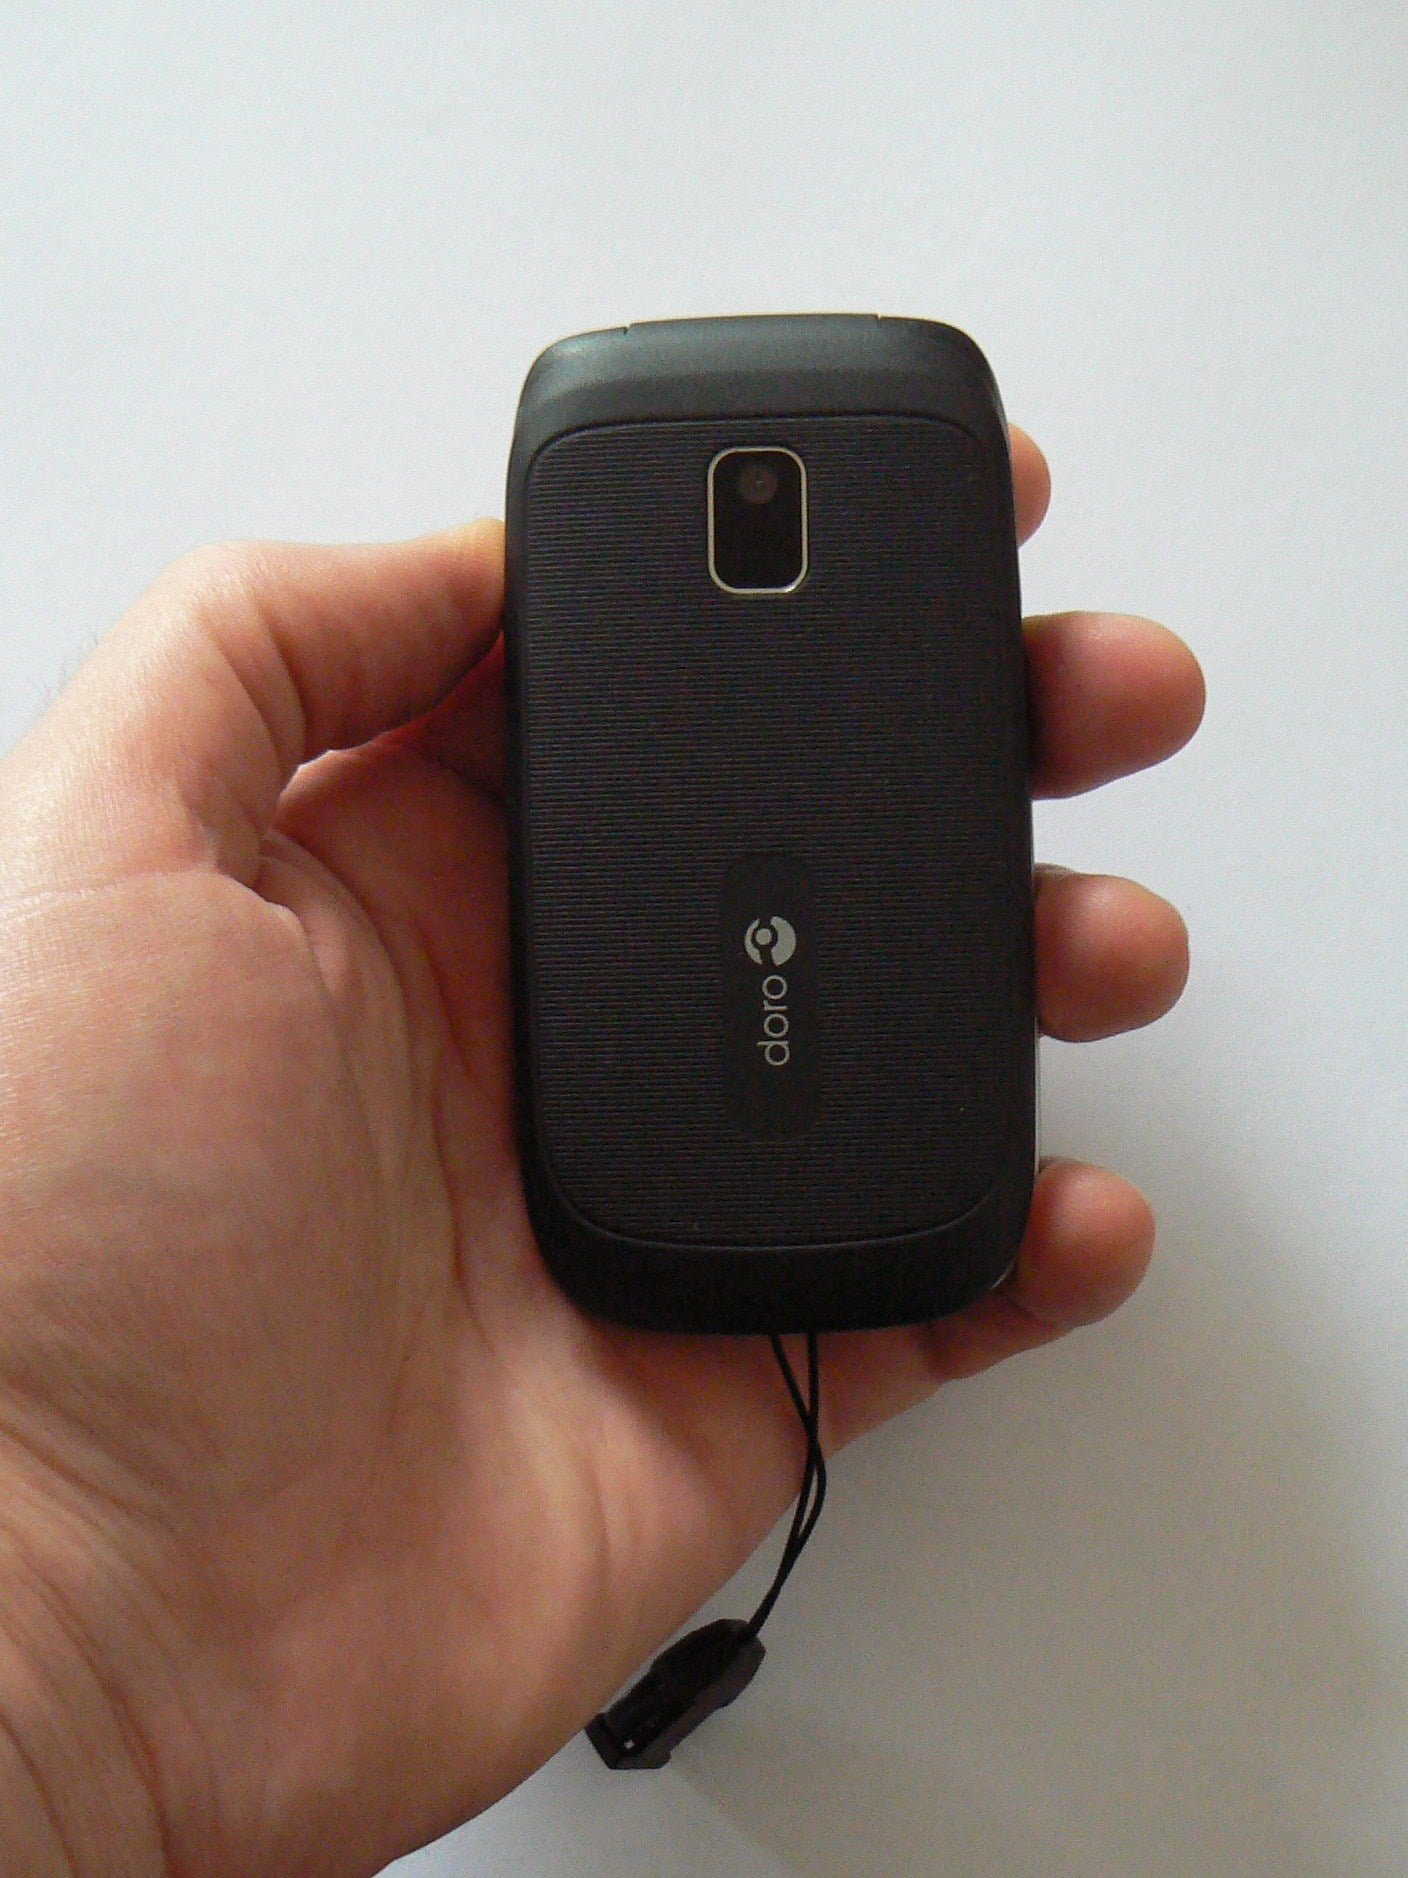 Doro PhoneEasy 612 Review | Trusted Reviews